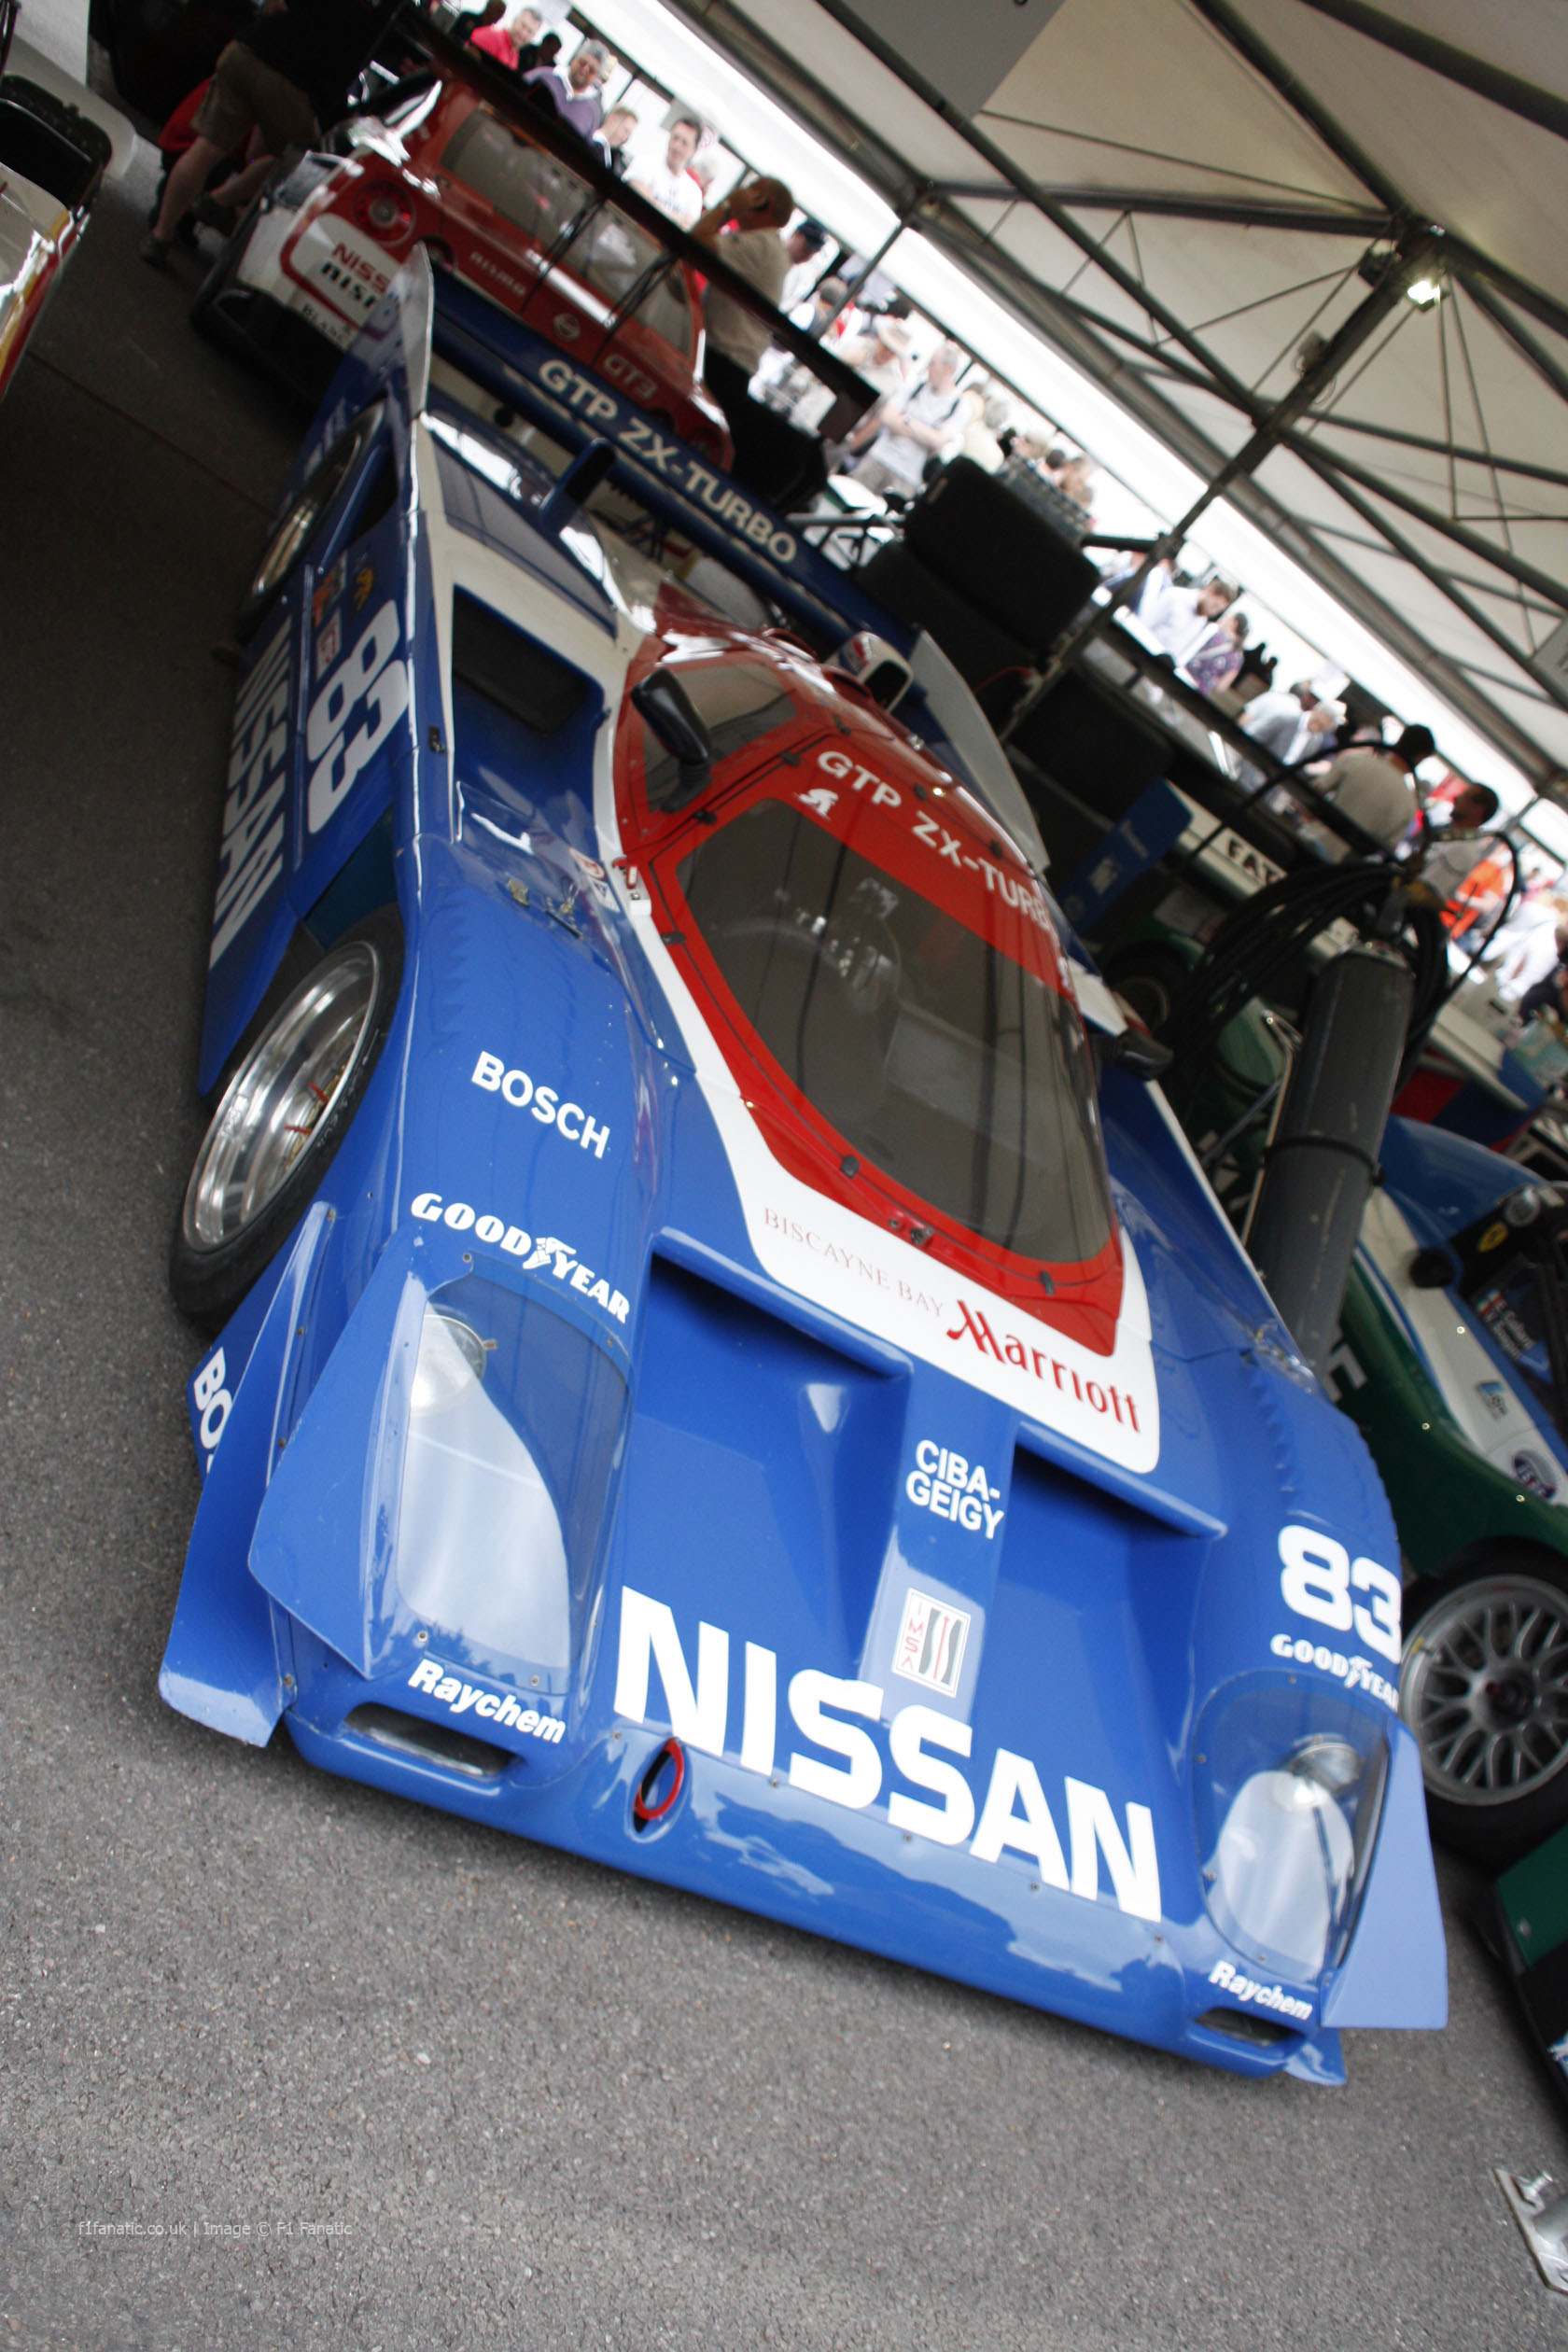 Nissan GTP ZX Turbo, Goodwood Festival of Speed, 2014